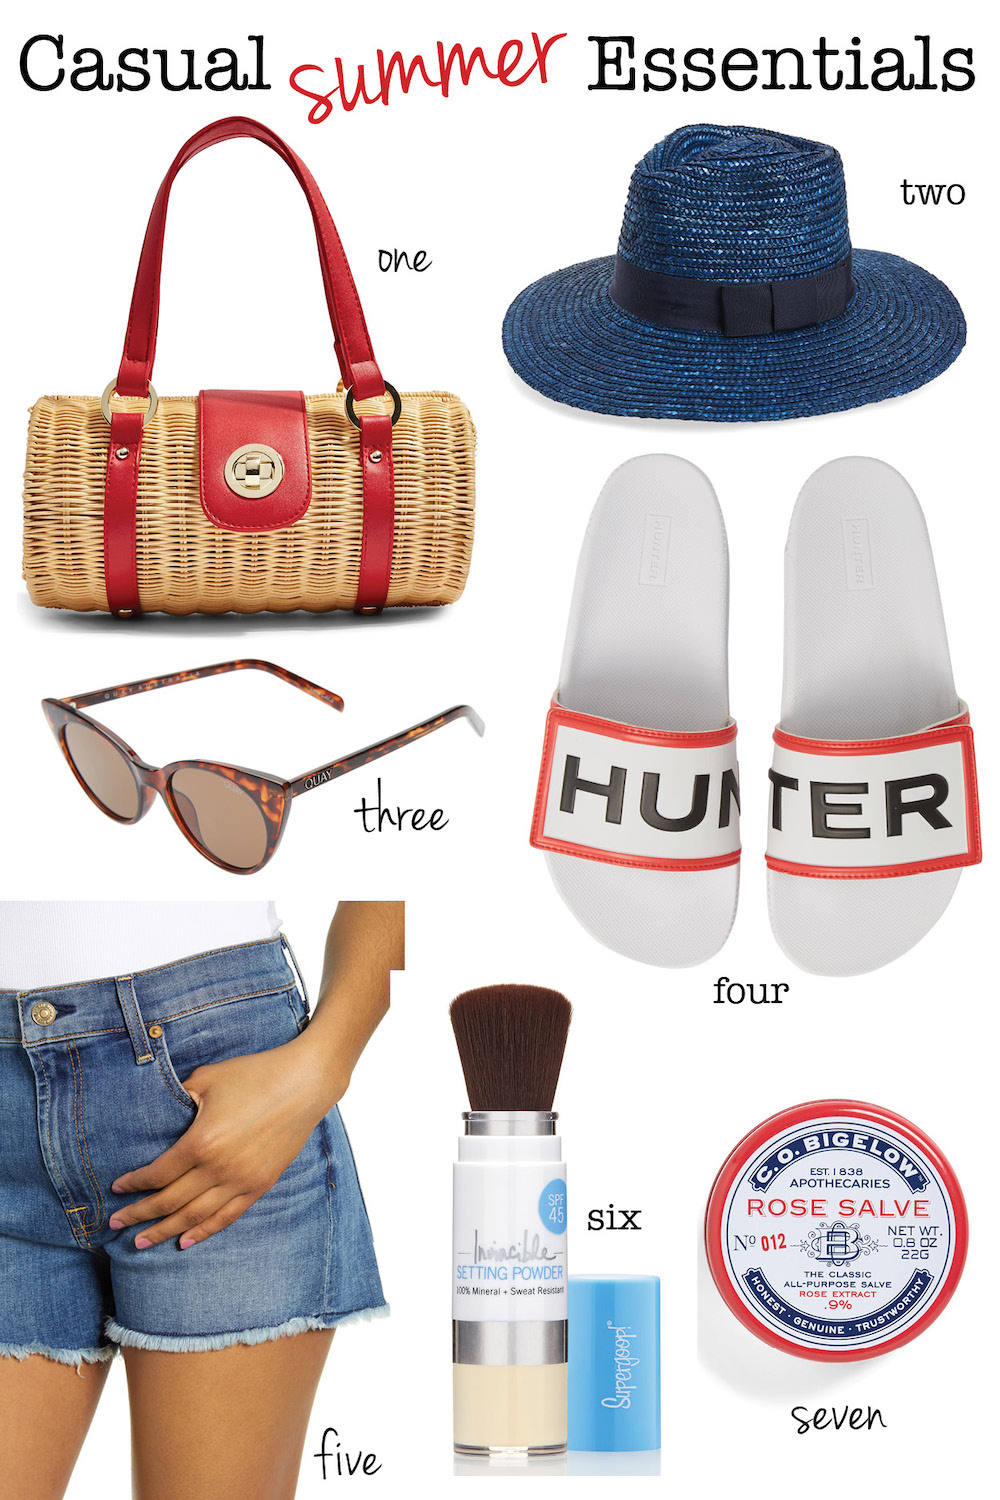 Casual Summer Essentials for less than $60! Hunter slides, high rise jean shorts, SPF setting powder, and more.